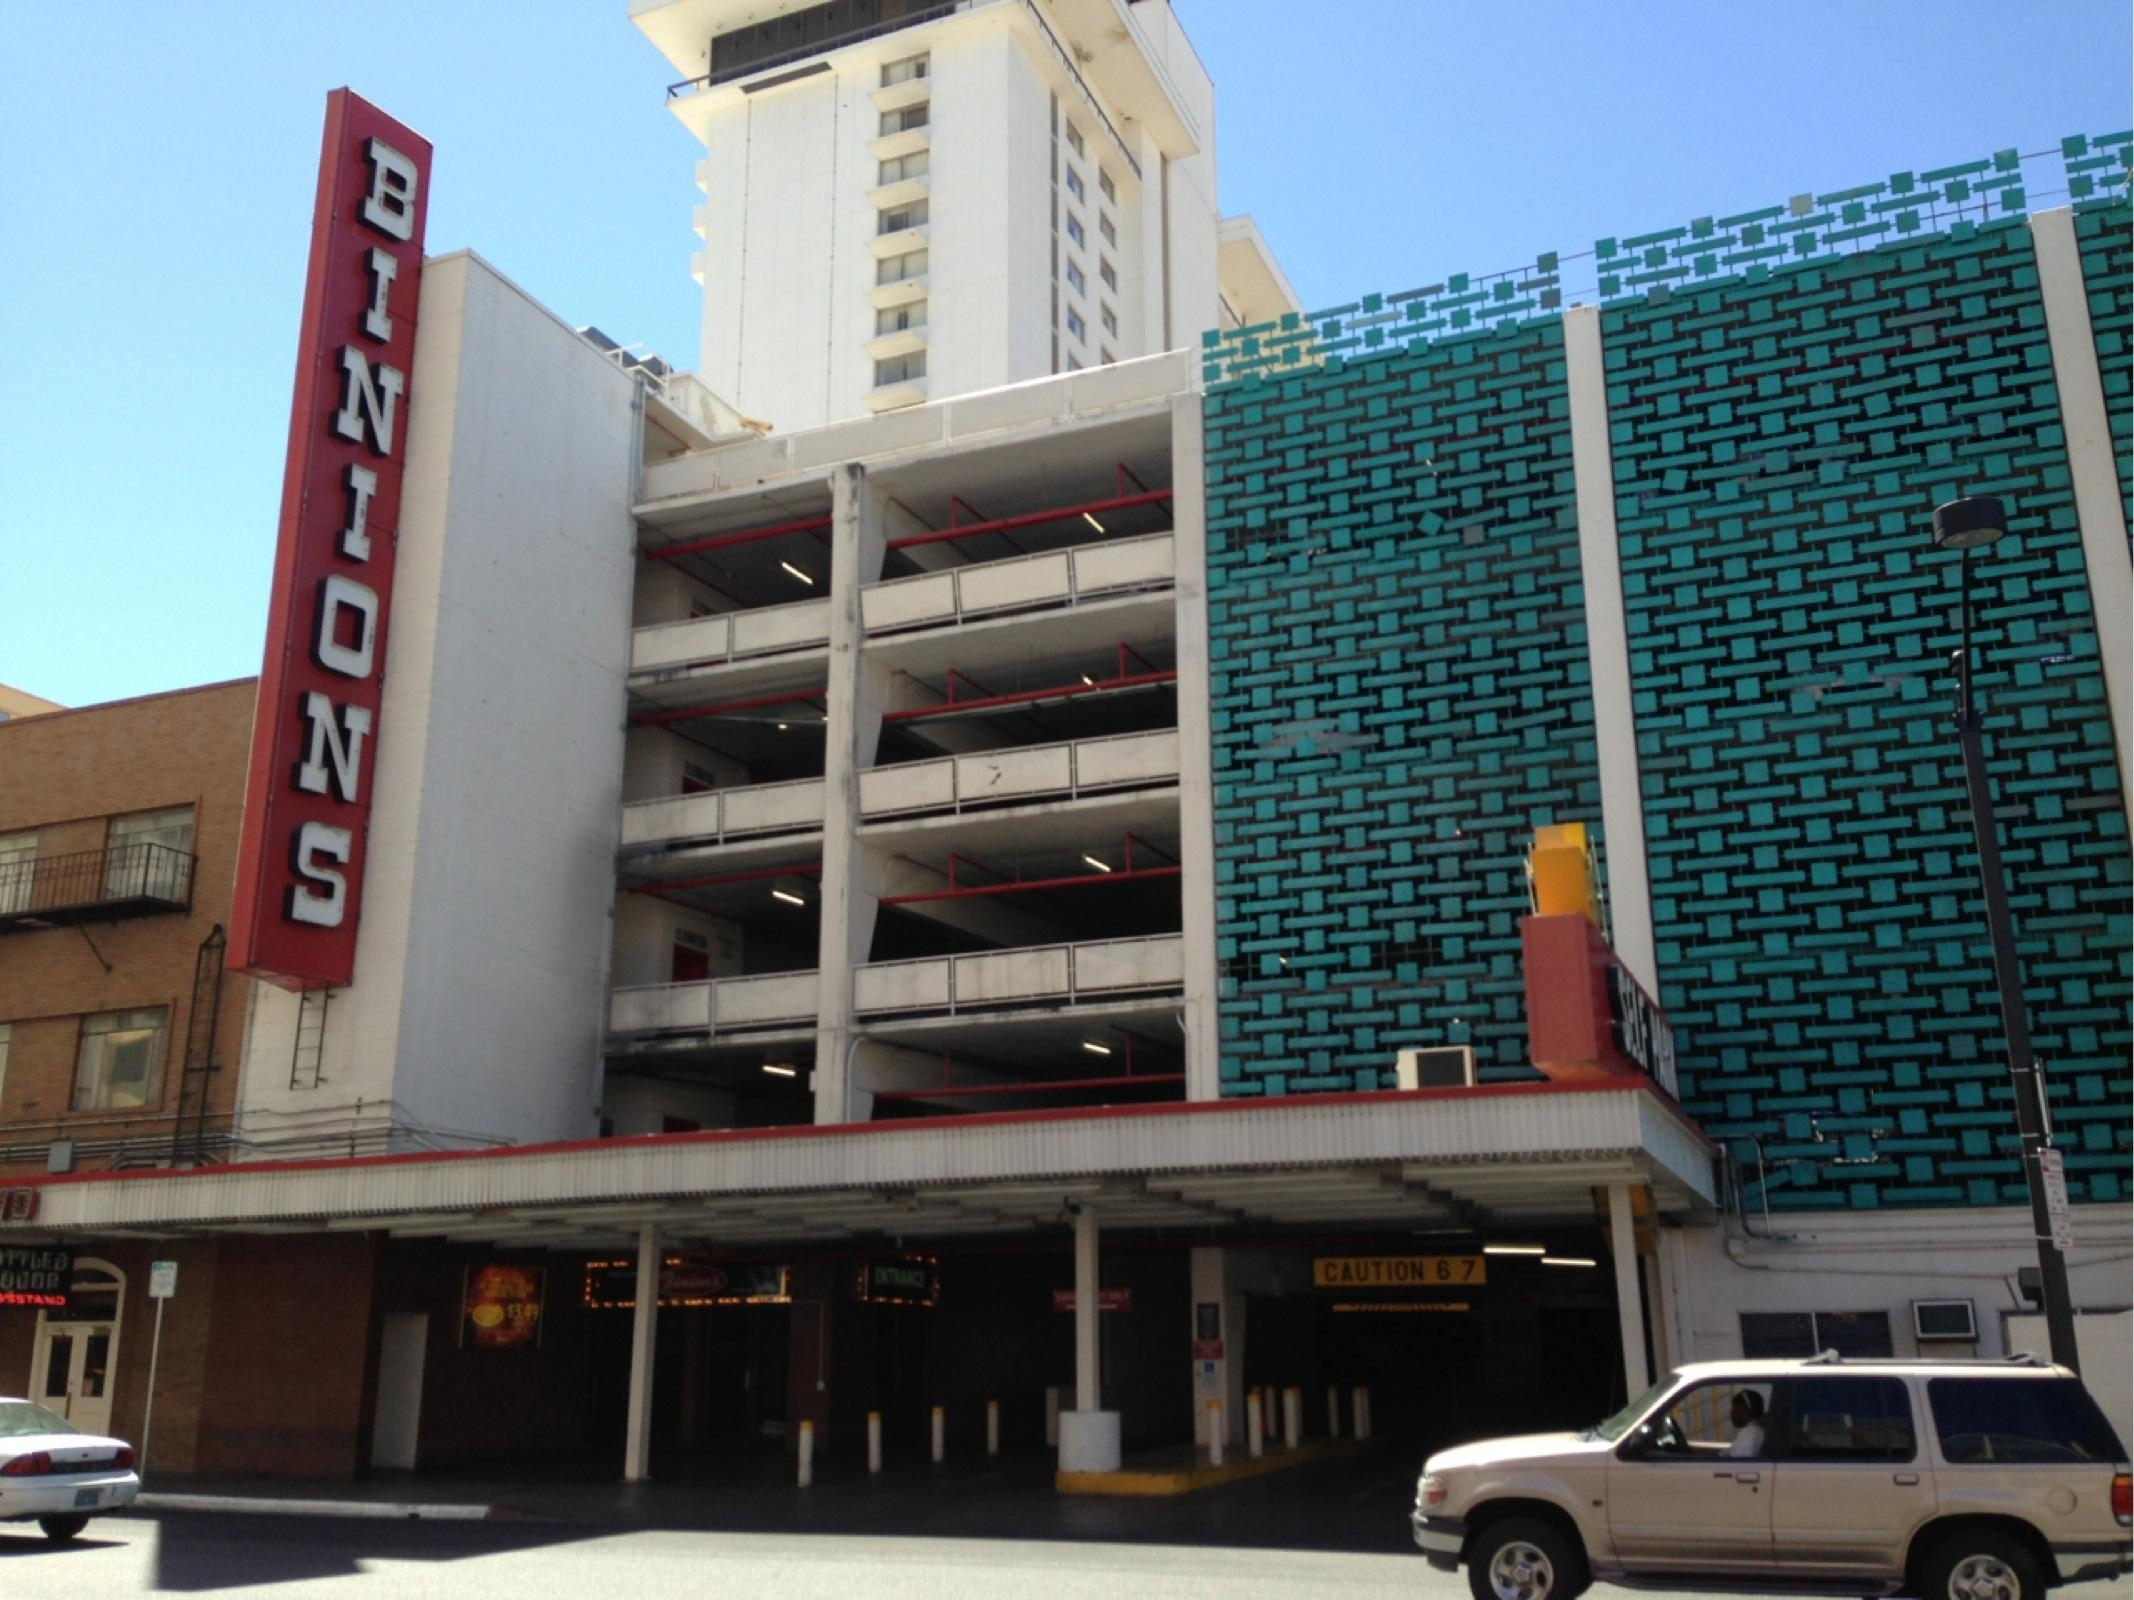 Binion gambling hall casino games for sale